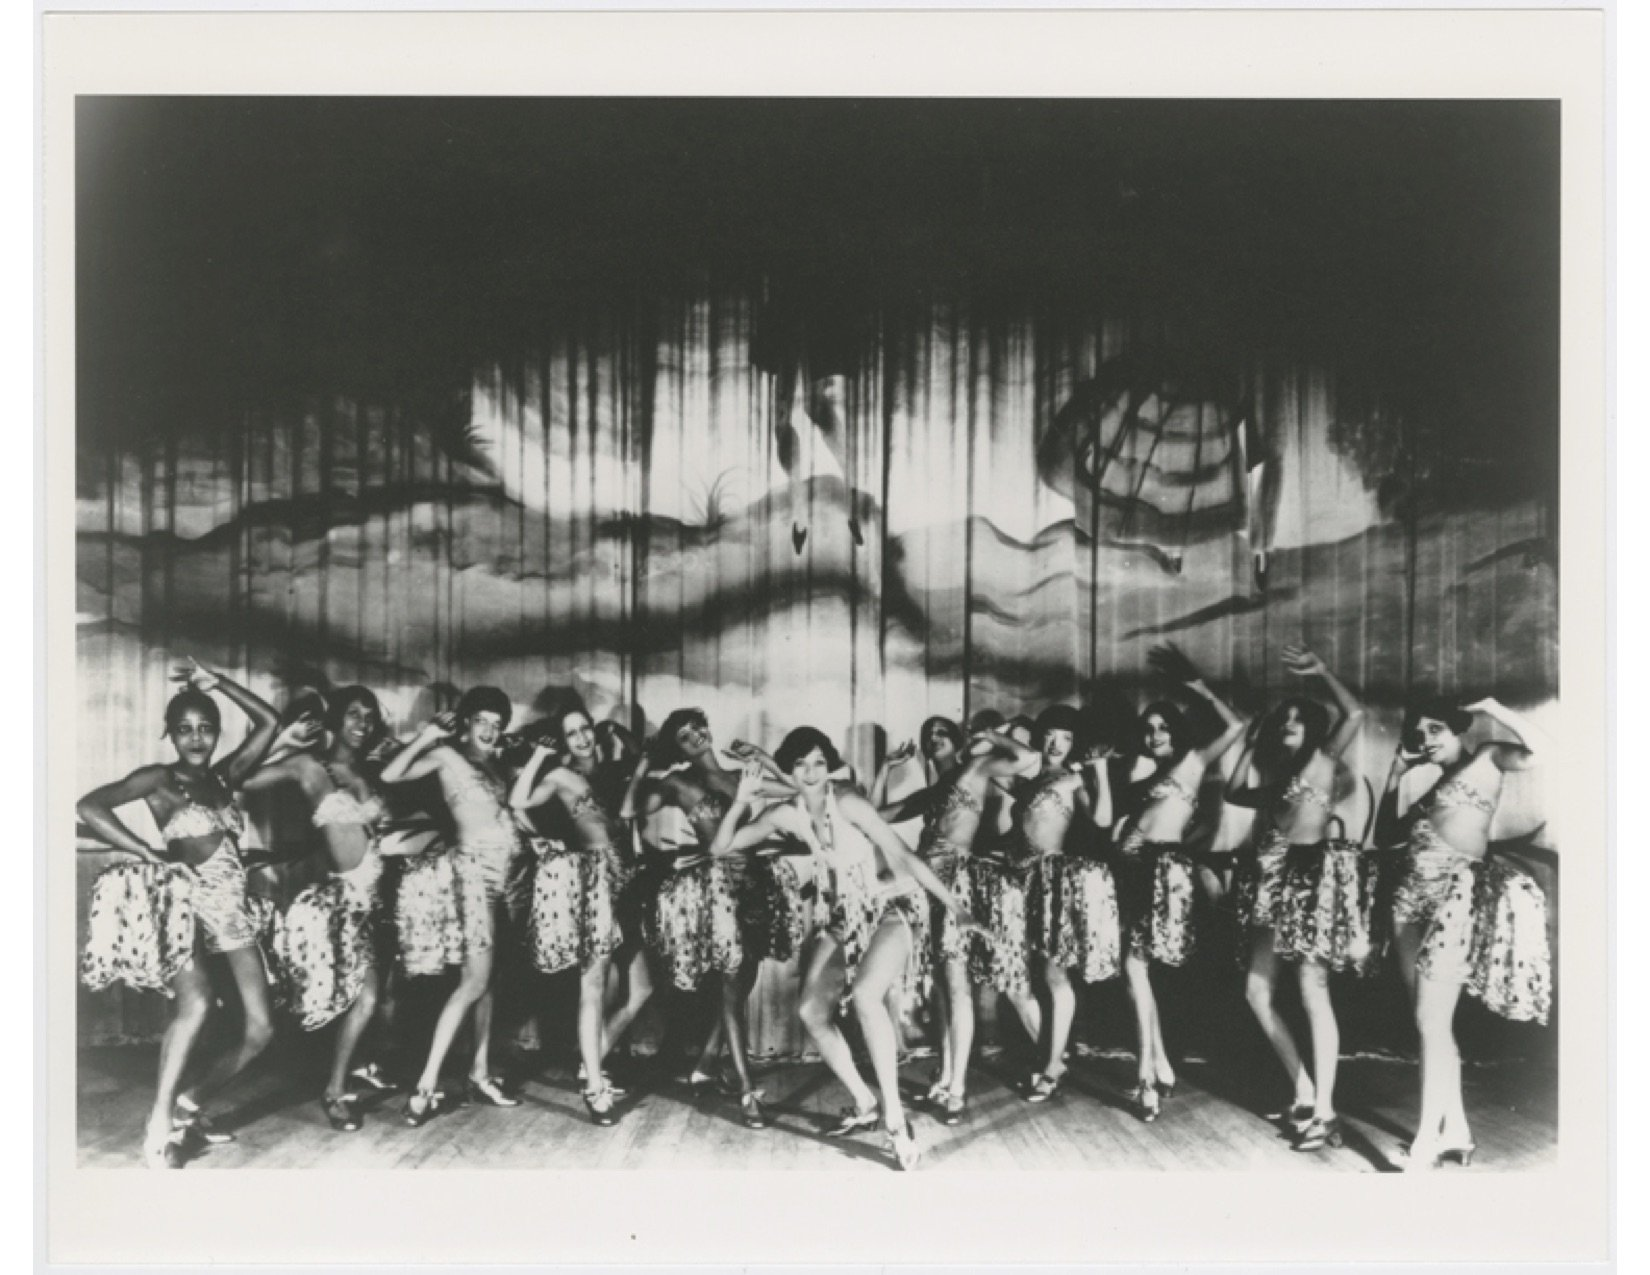 Black and white photo of 11 showgirls on stage